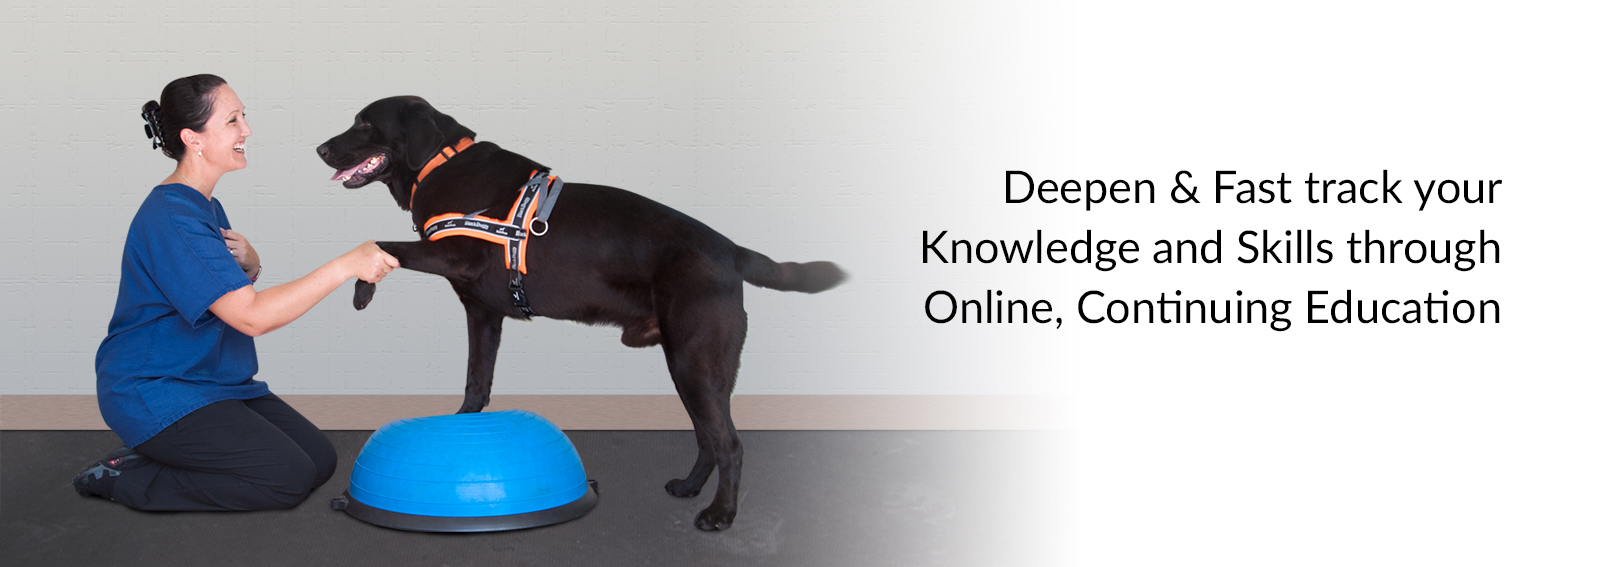 Onlinepethealth Small Animal Intro Slide